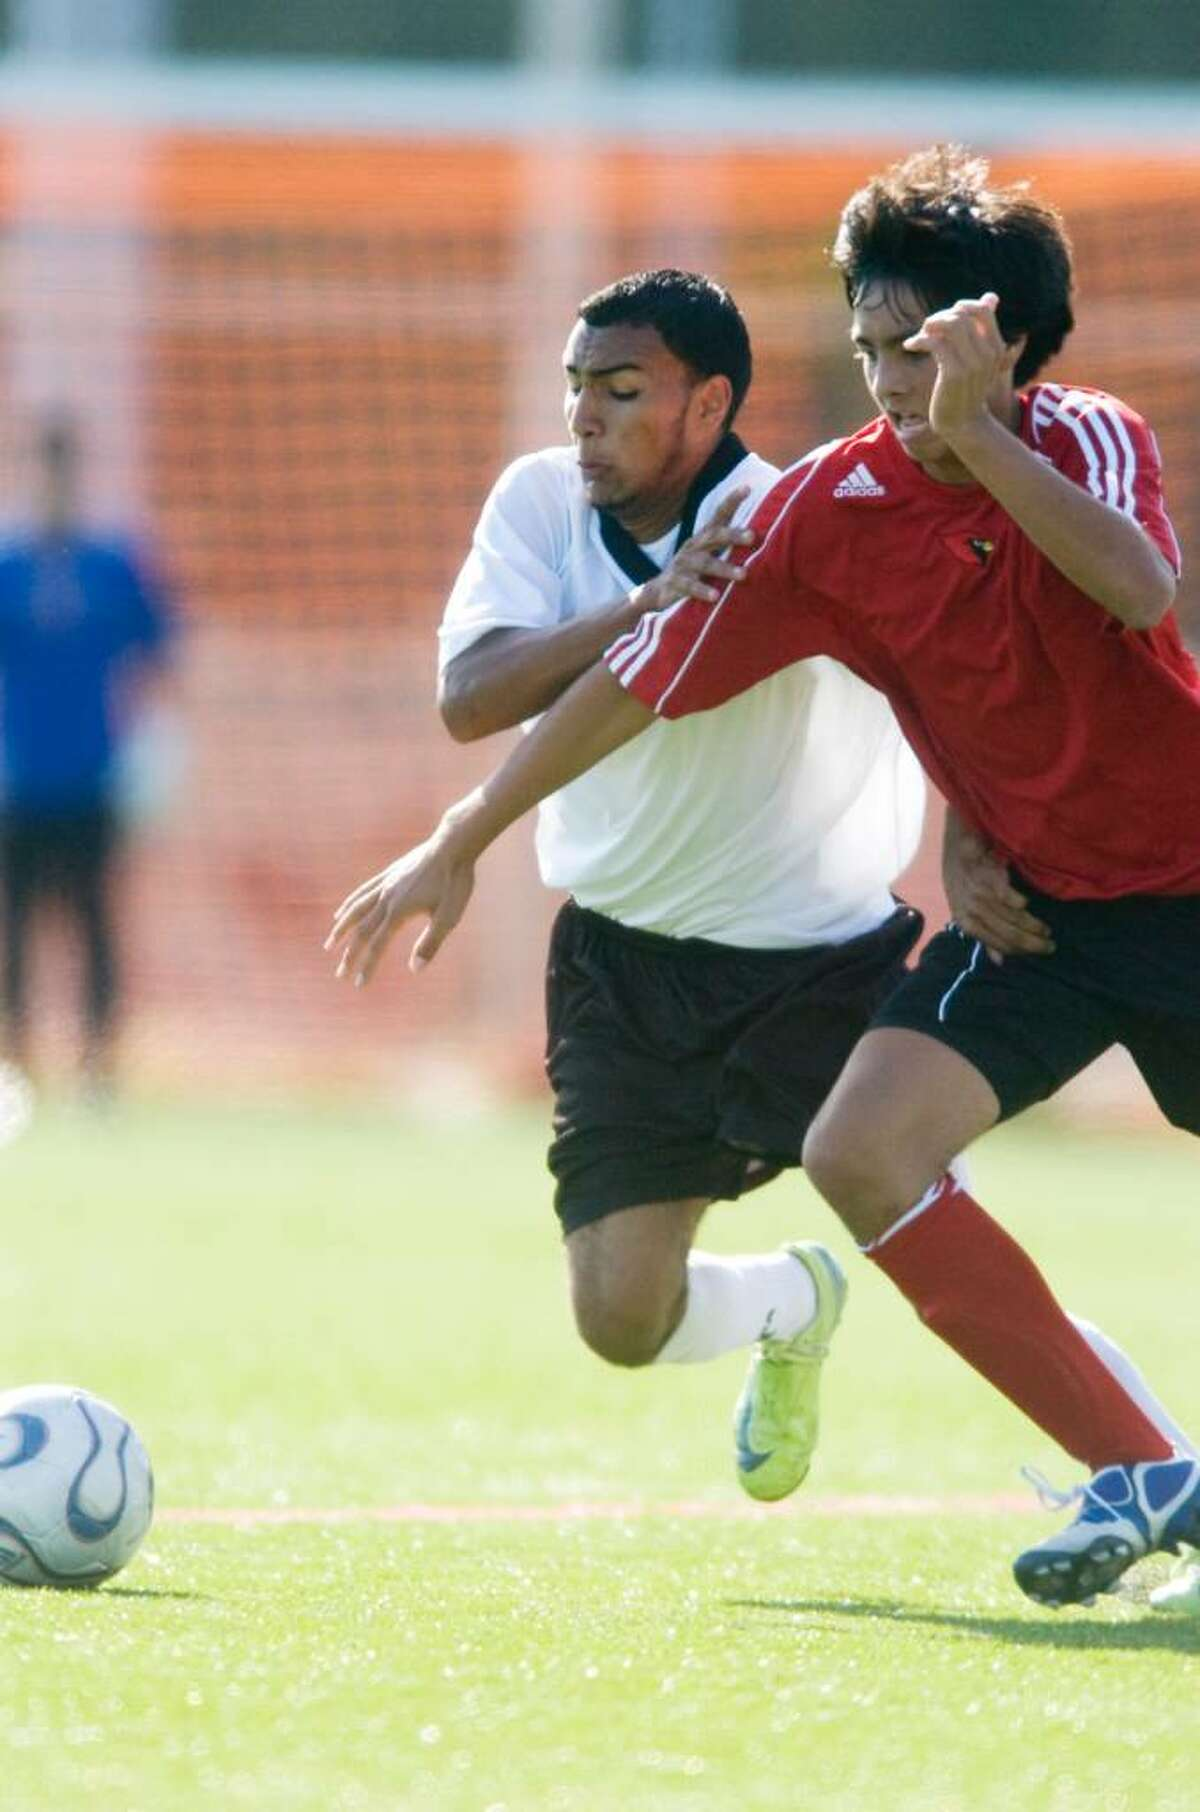 Carlos Calix, left, of Stamford High School and Spencer Tanaka, right, of Greenwich High School go after the ball during an FCIAC boys soccer match at Stamford High School in Stamford, Conn. on Monday, Sept. 21, 2009